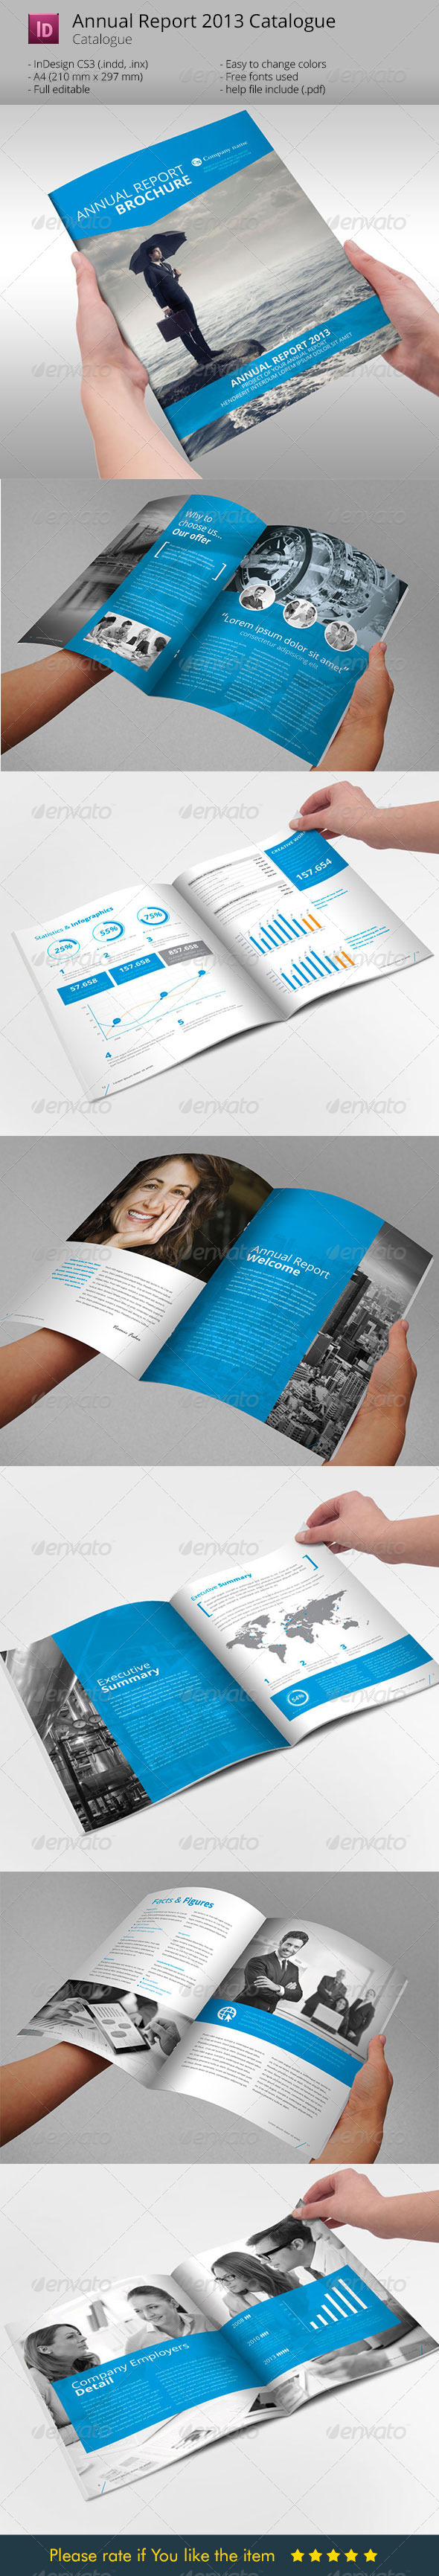 Annual report brochure indesign template by braxas for Indesign templates brochure